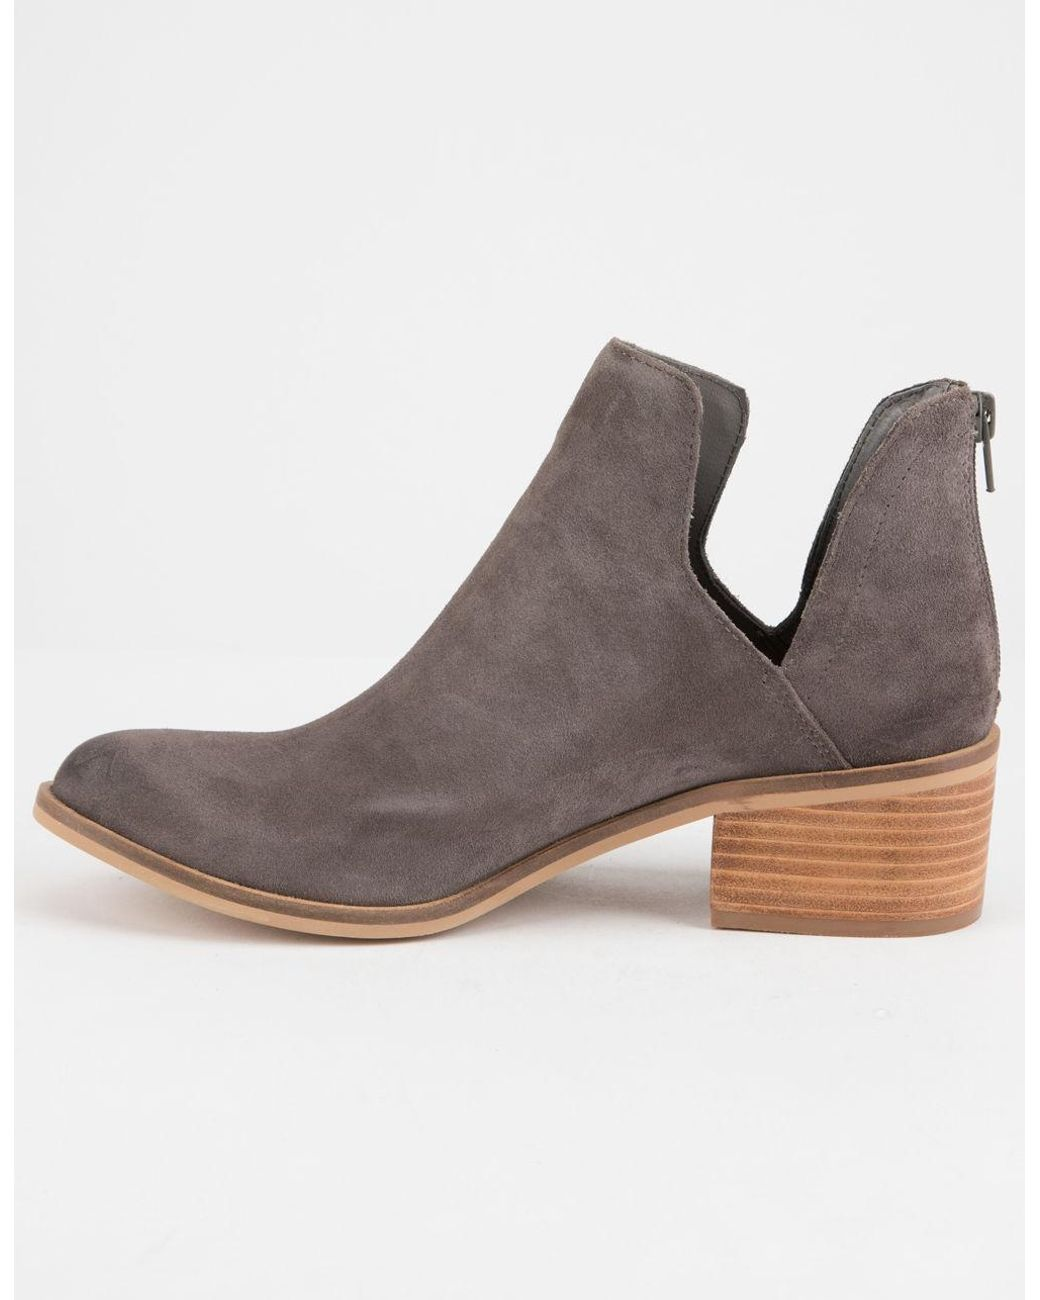 187cdcae406 Gray Lancaster Womens Booties